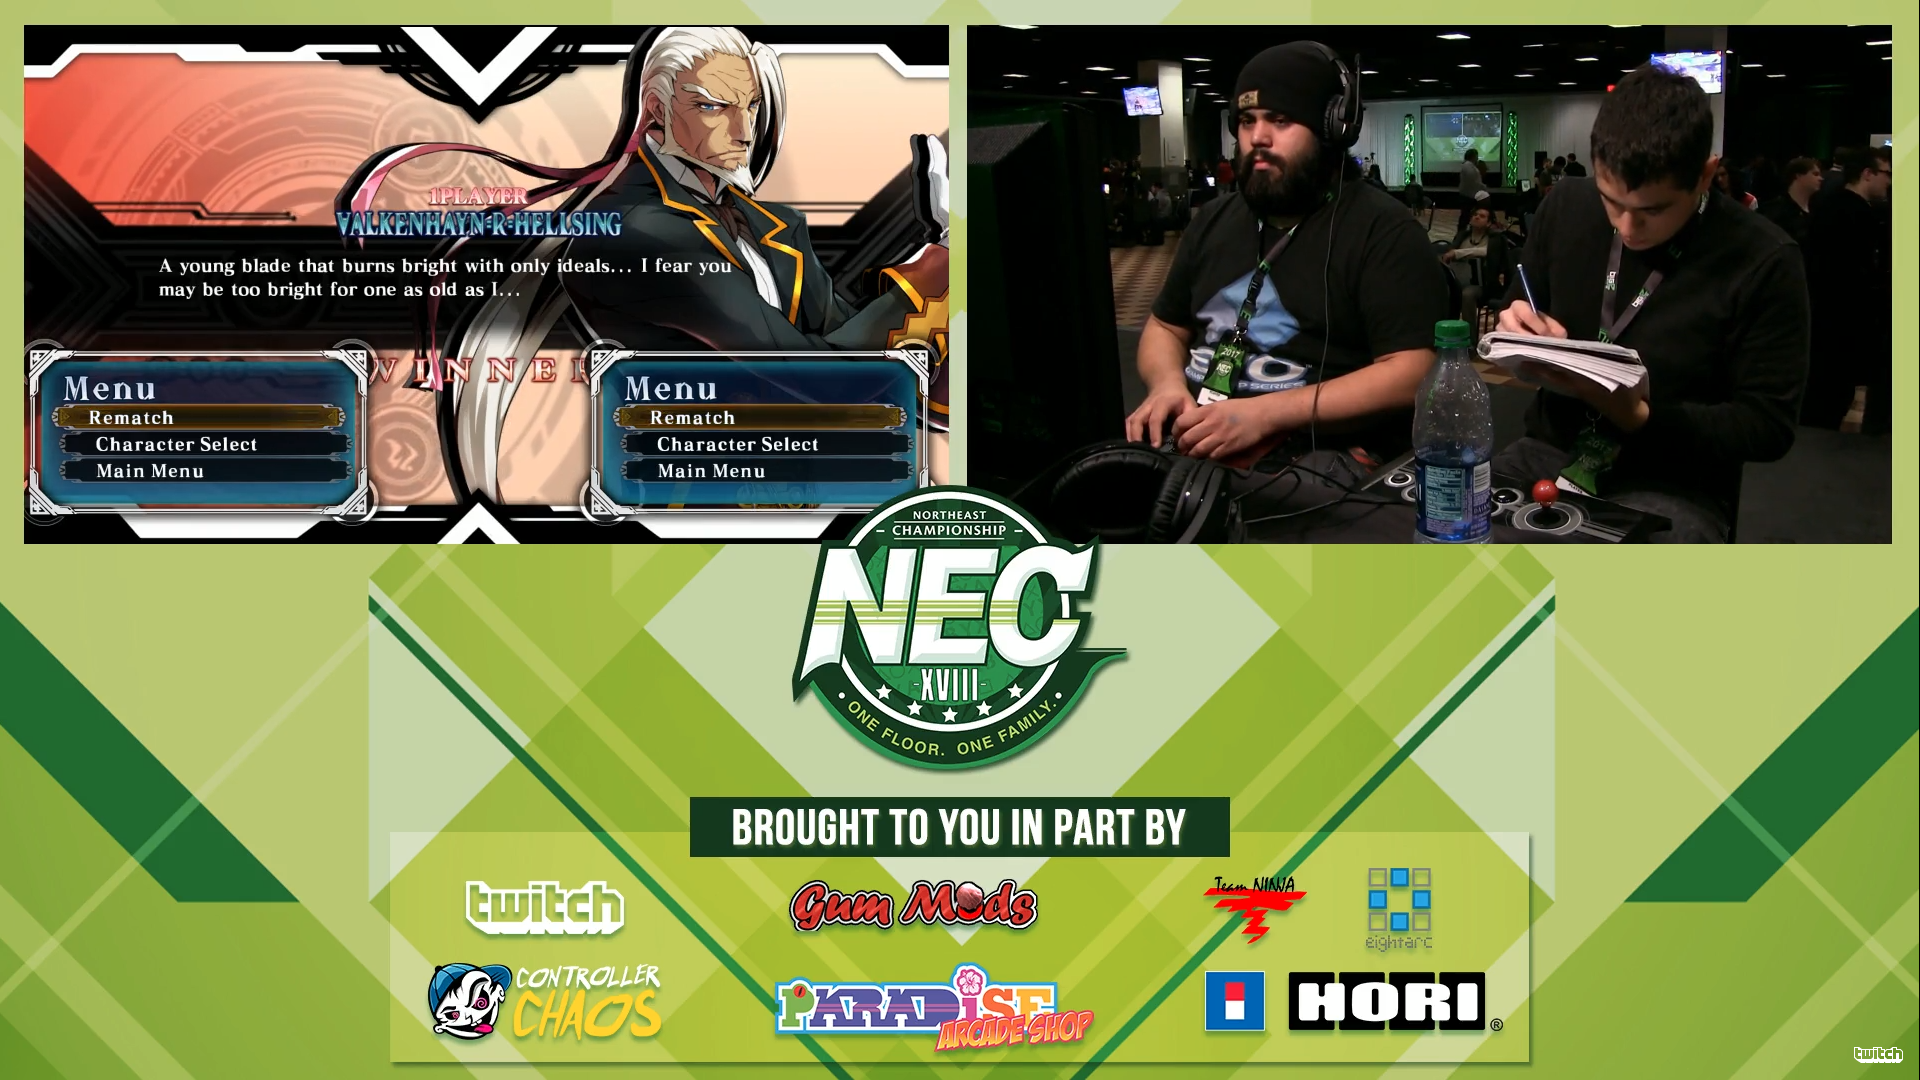 BlazBlue Player Explains Why He Writes In A Notebook During Matches